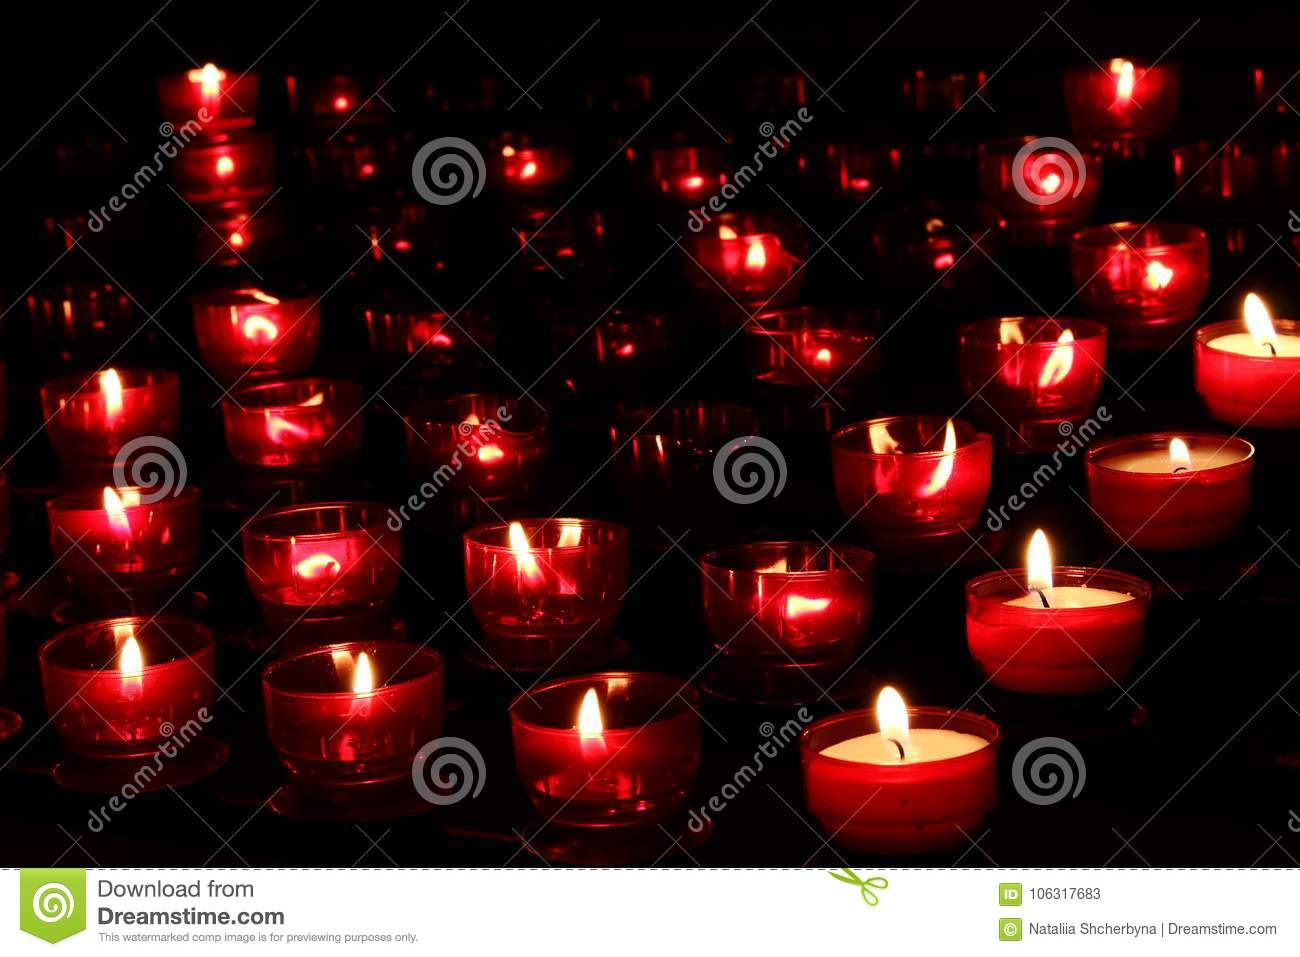 Red candles with glowing lights in darkness in church. Peace and hope background. Religion concept.